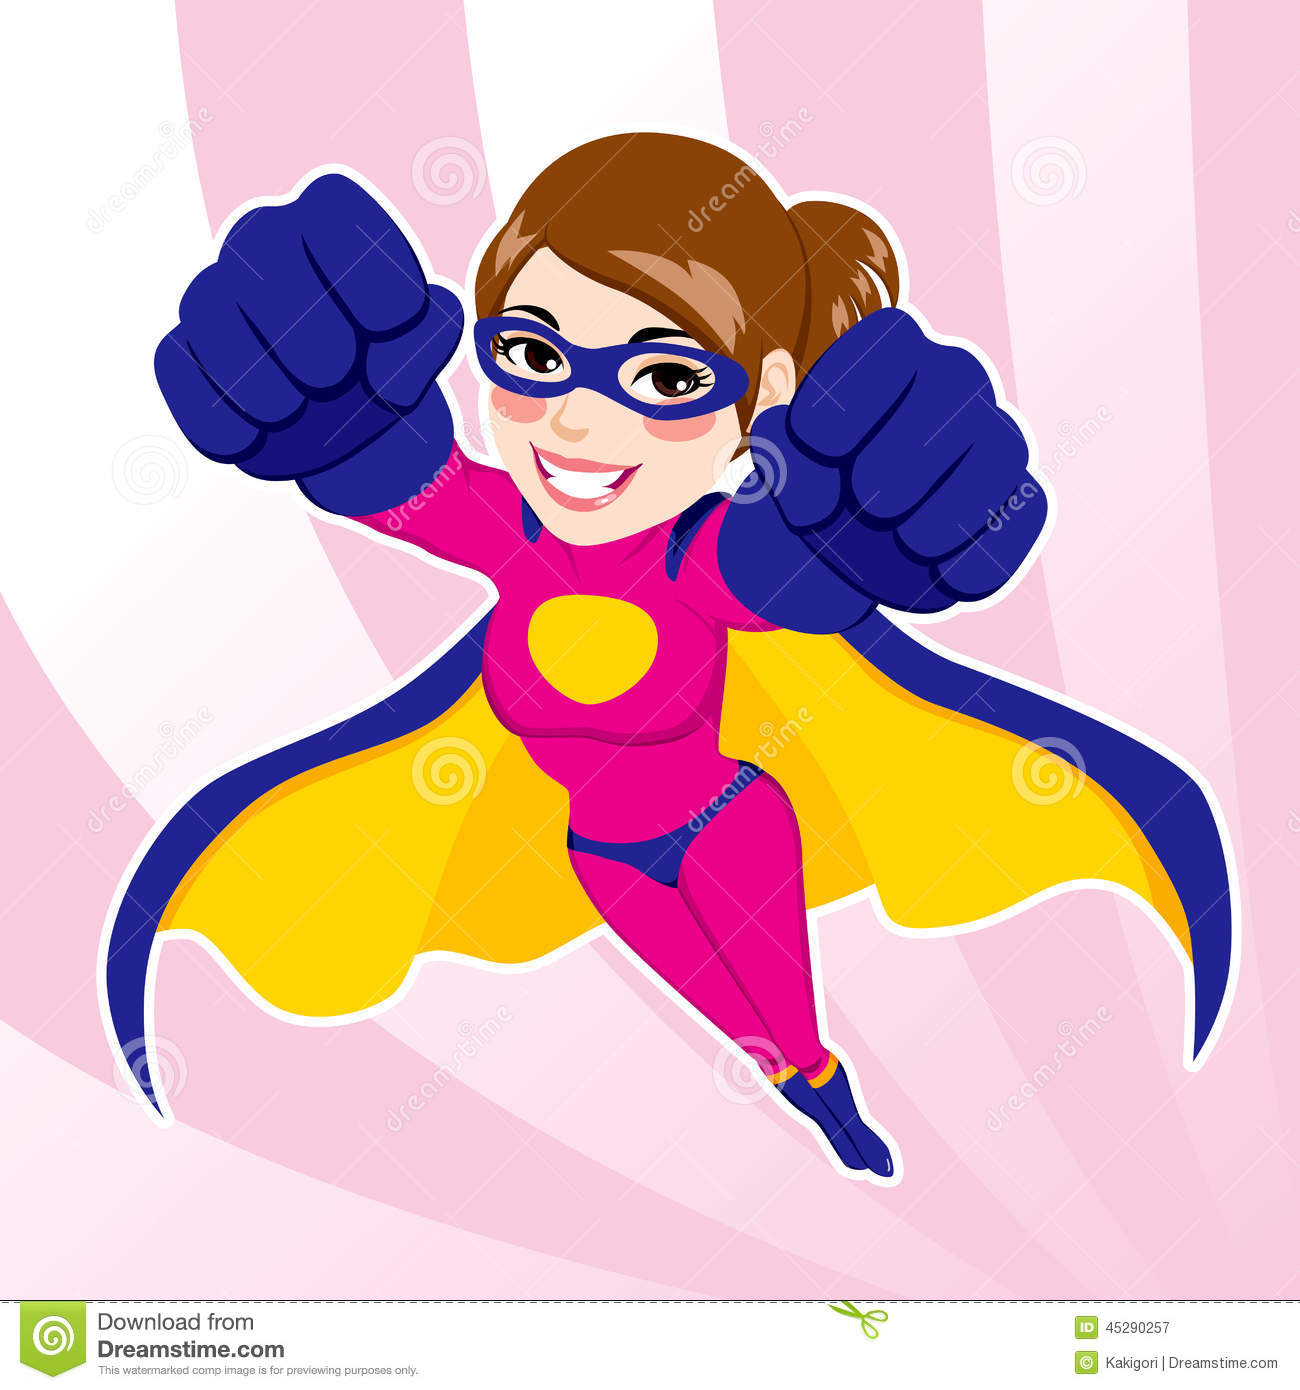 Illustration of sexy beautiful fit woman in superhero costume flying.